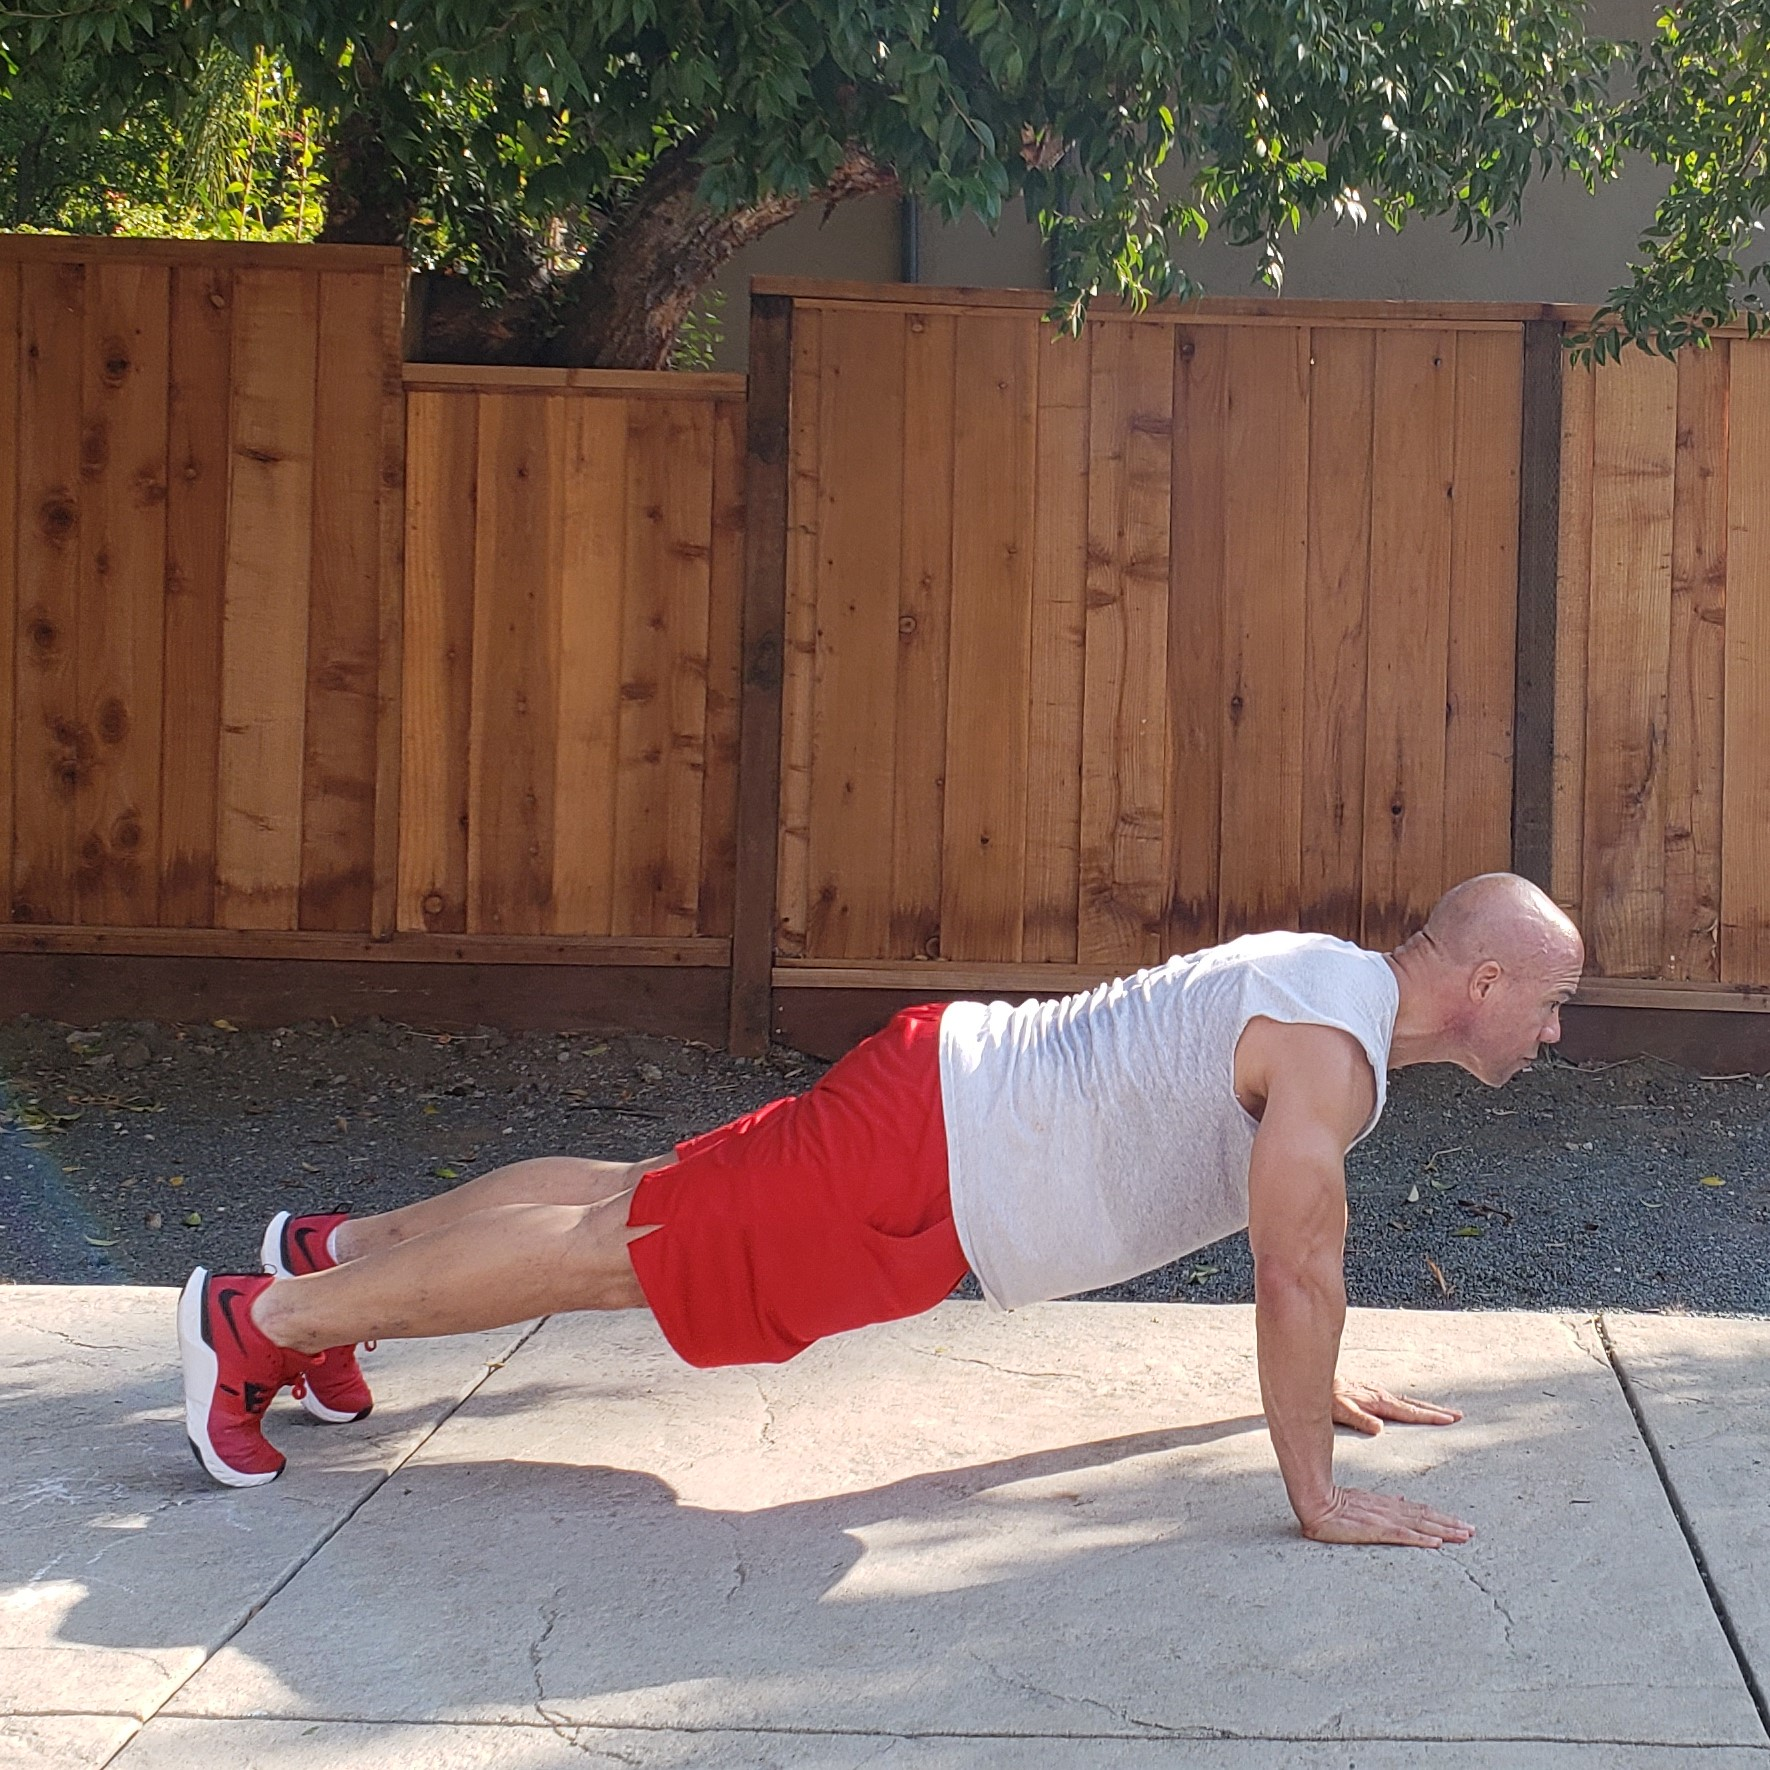 7 pushups 15 x 15 x 15 Workouts For Older Men HOME Gym Workout #4